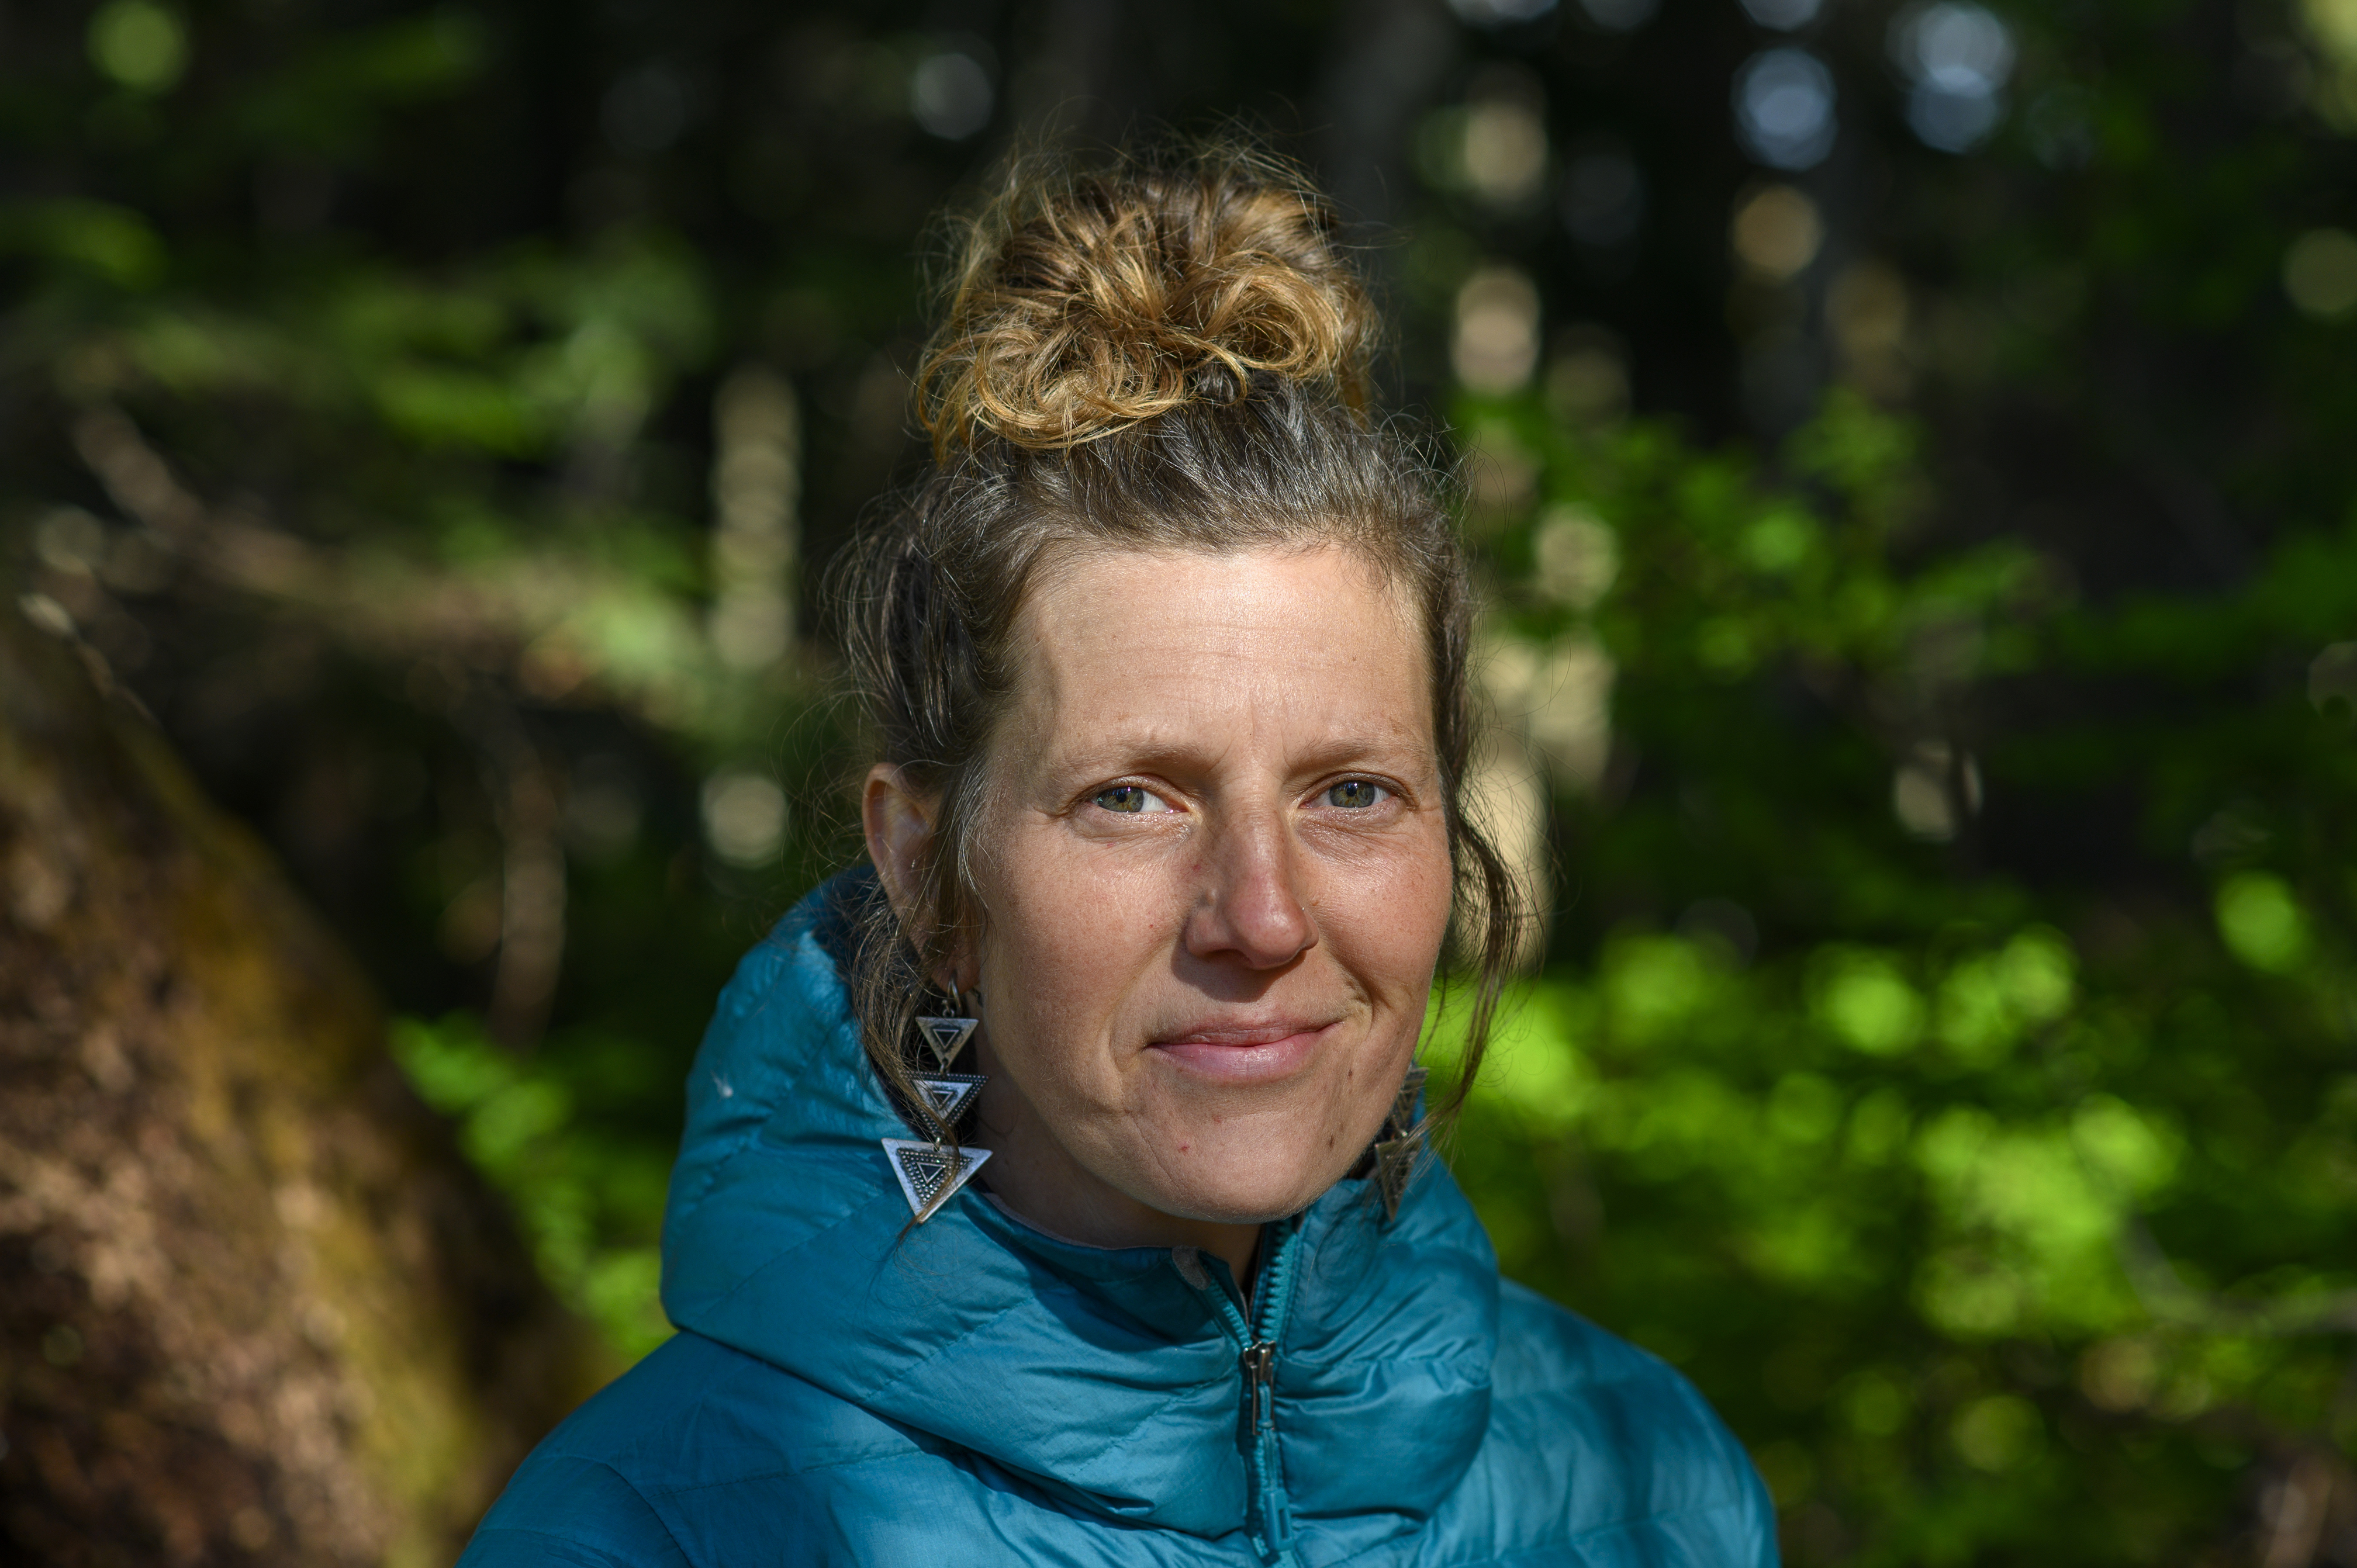 Shawna Knight, one of the Ridge Camp protesters, is of mixed Norwegian and Secwepemc heritage but says she has lived most of her life estranged from the Indigenous part of her identity. (Kieran Oudshoorn/CBC)